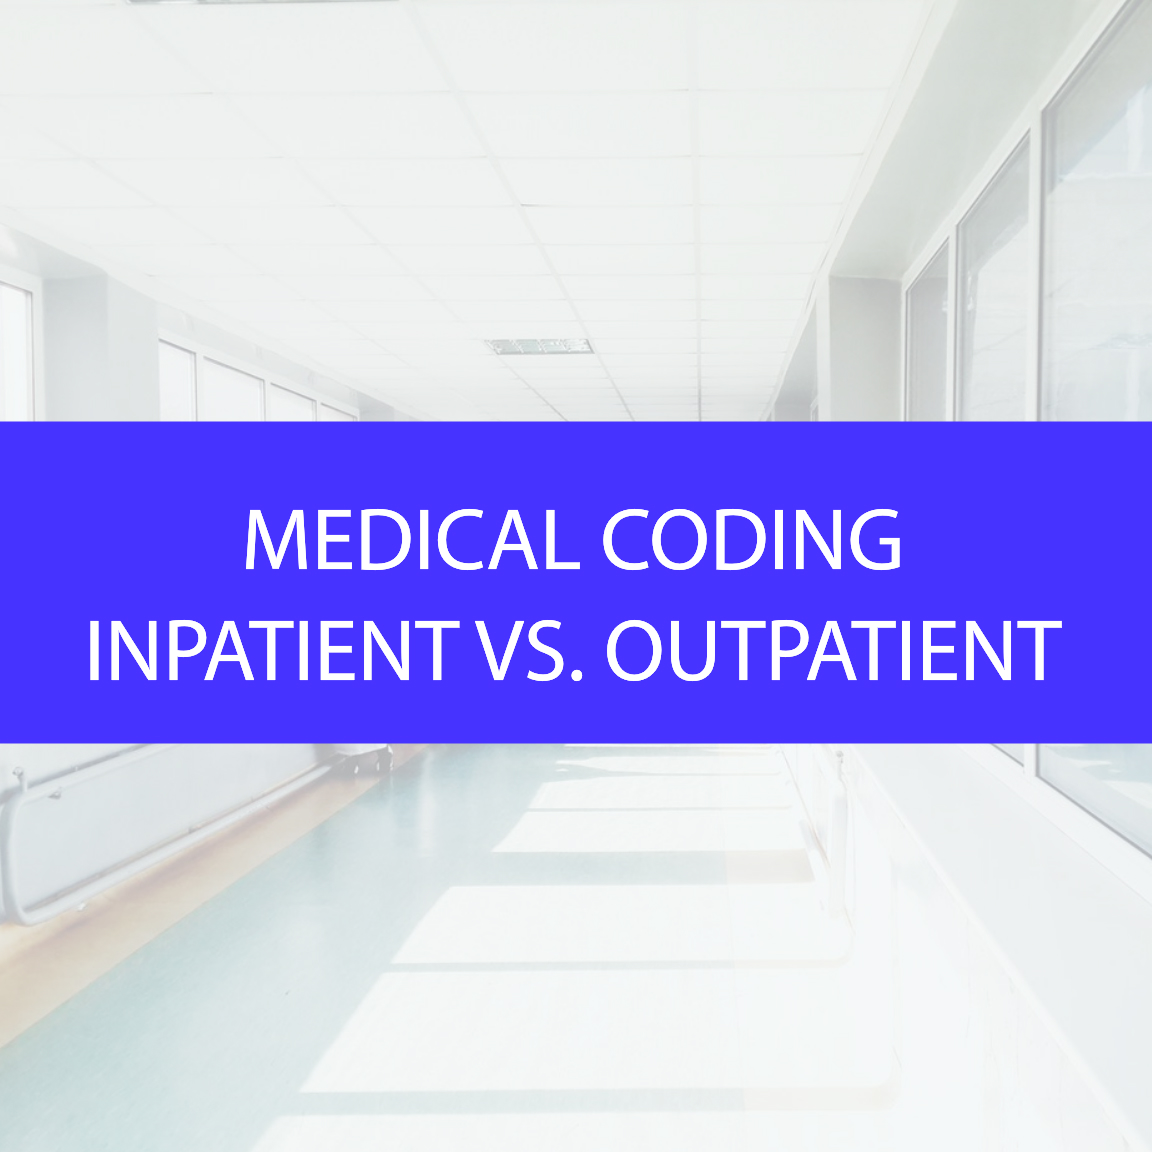 Inpatient and Outpatient Medical Coding Services_MedConverge 05-18-18